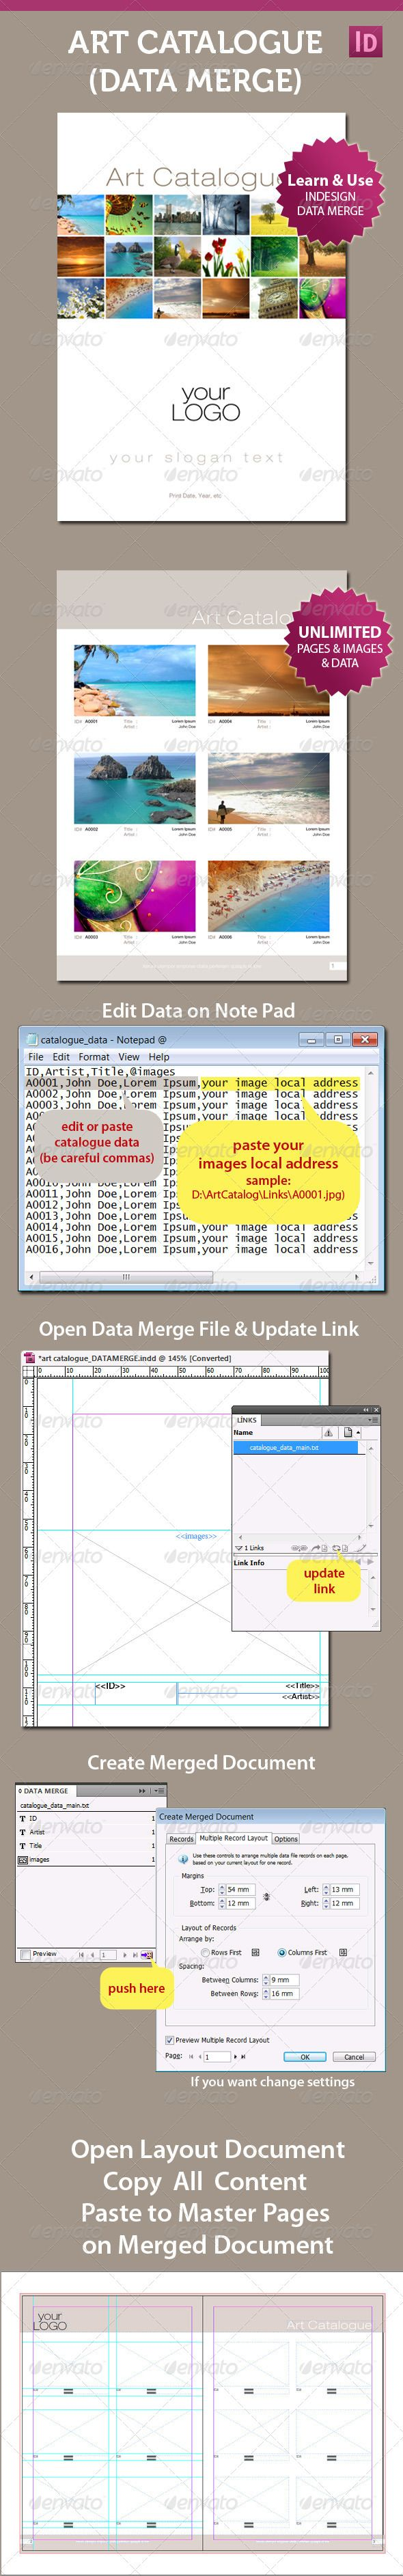 Art Catalogue Template For InDesign Data Merge | Product catalog ...